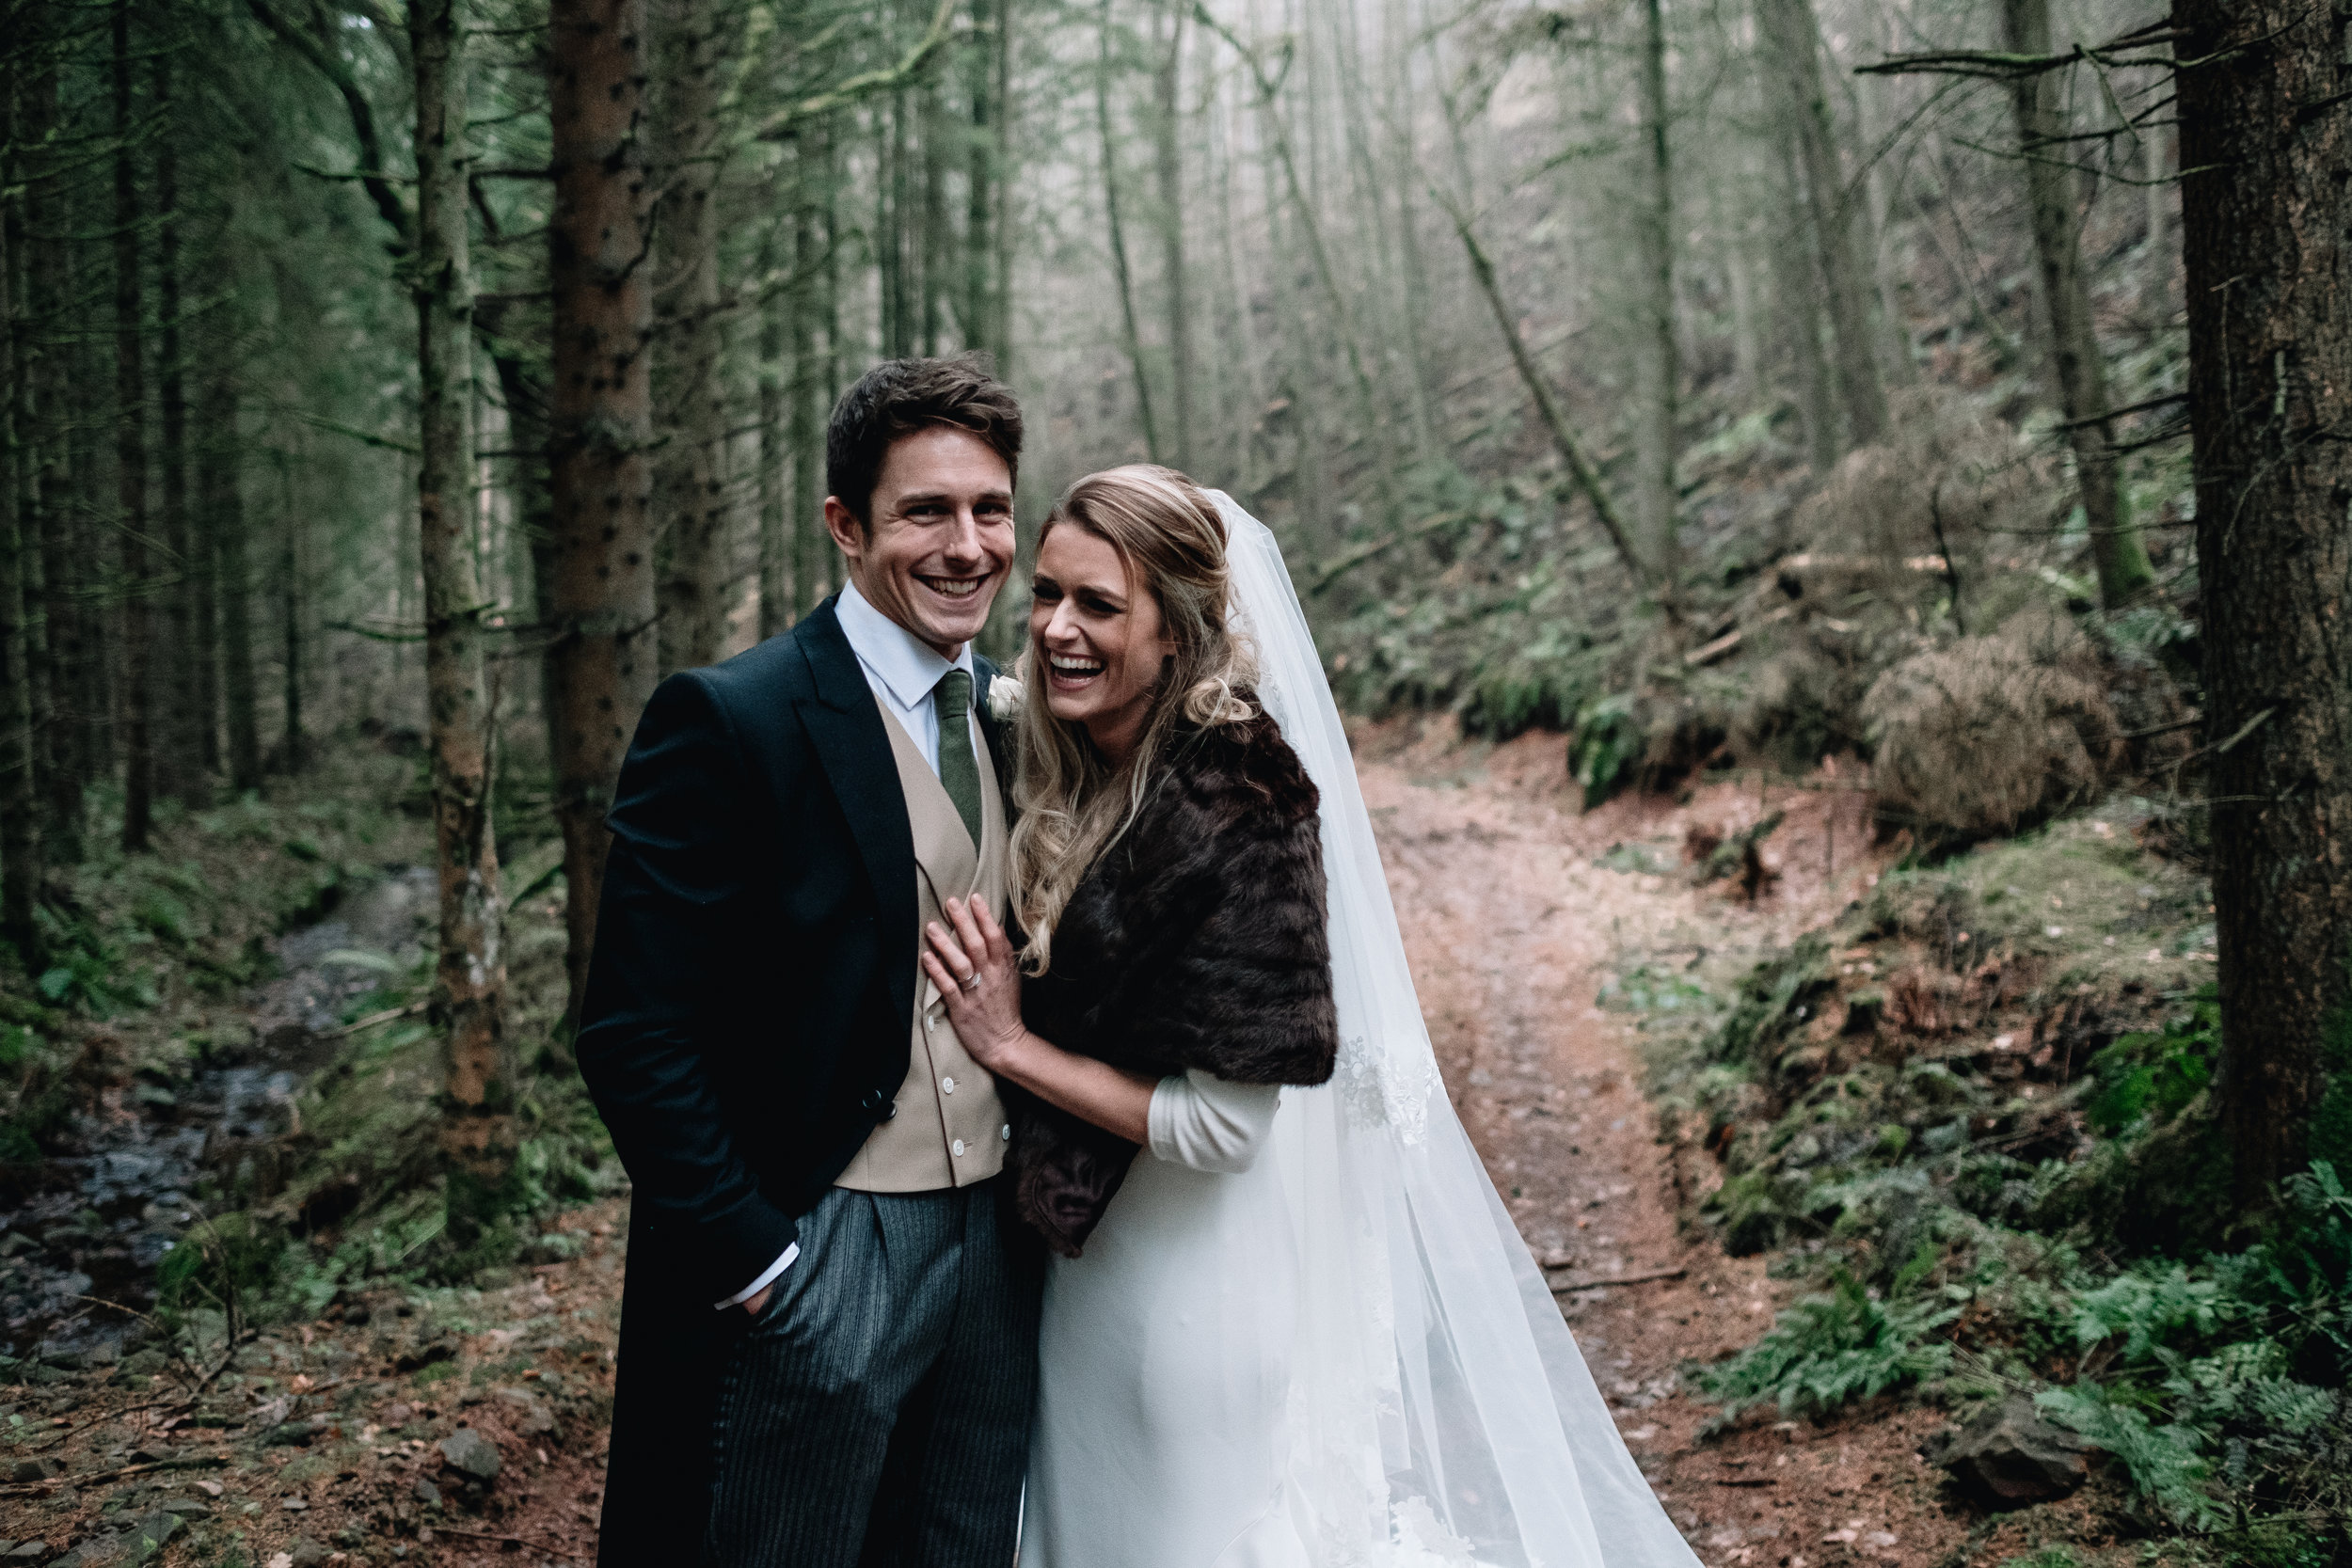 Bride and groom standing, laughing in a forrest